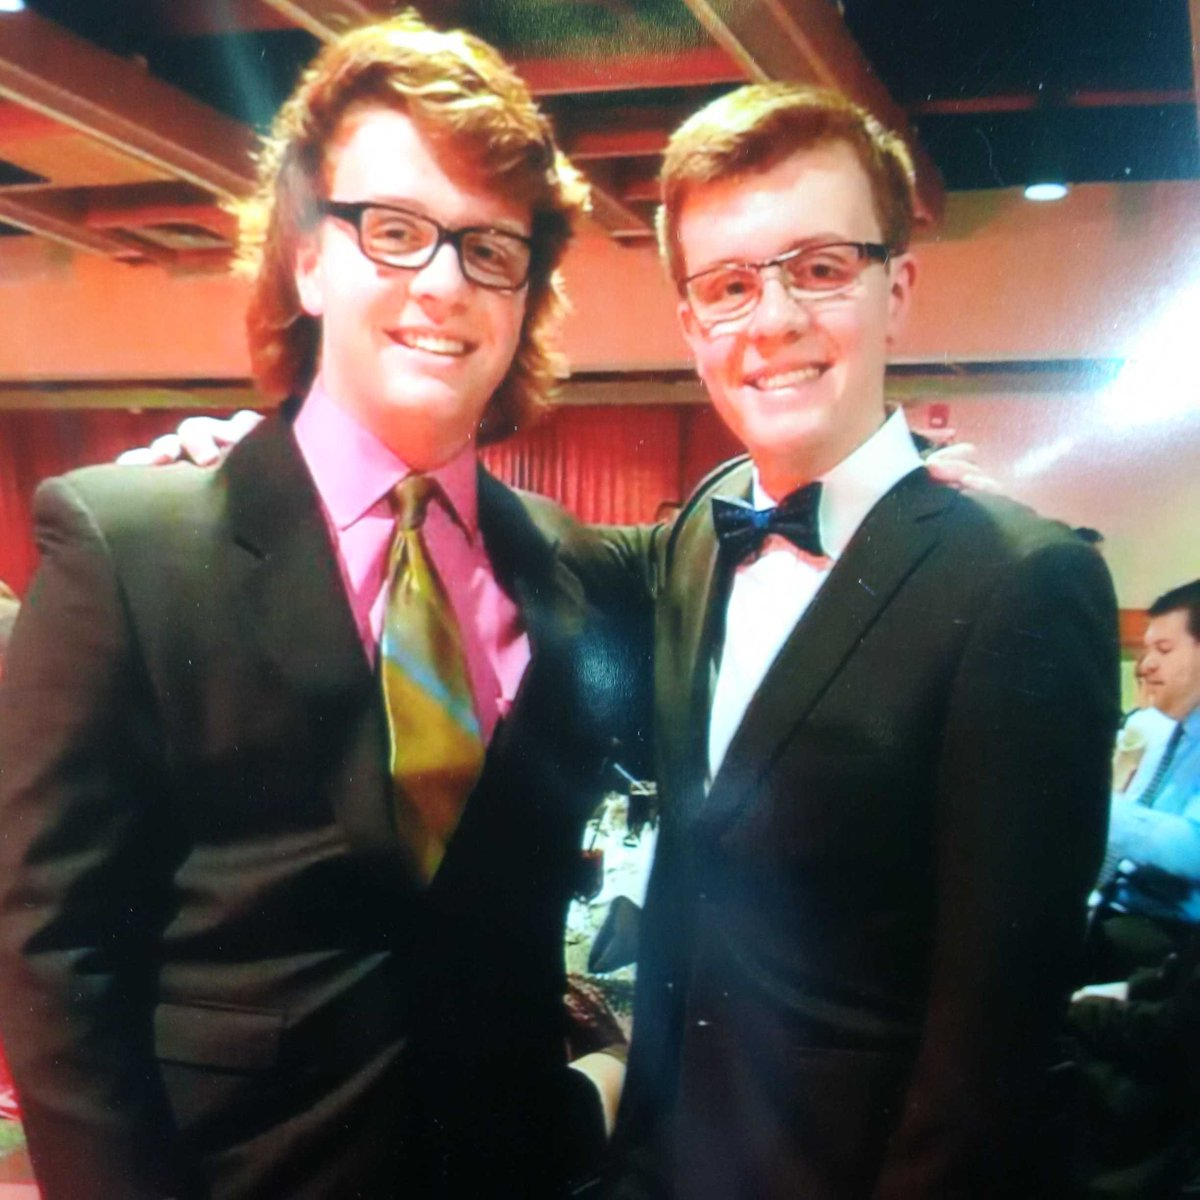 Memorial service for Evan and Jordan Caldwell, 17 yr-old twins, is today at 1 at Calgary's Centre Street Church.